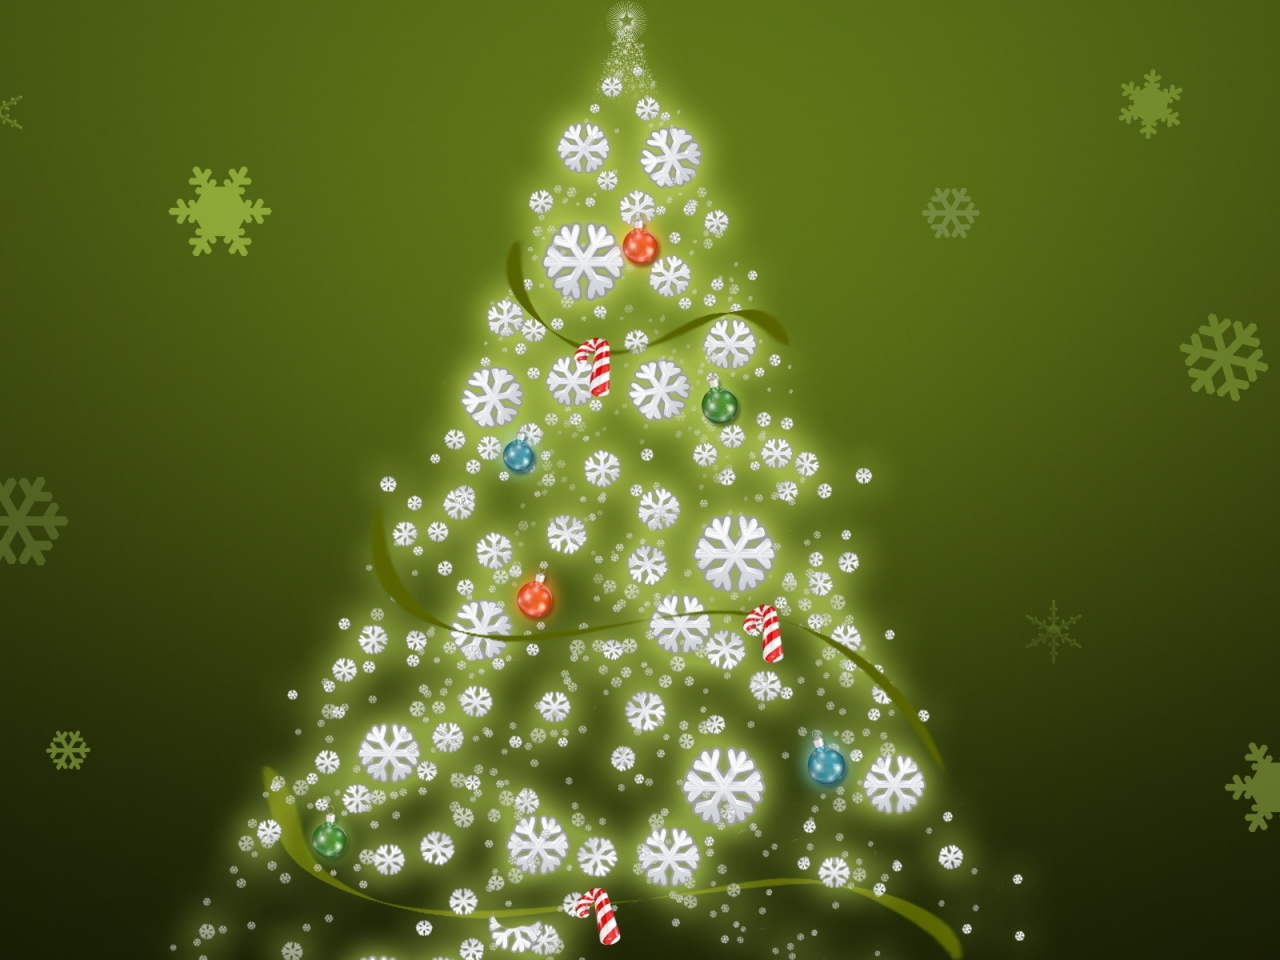 Its Just a Christmas Tree for 1280 x 960 resolution